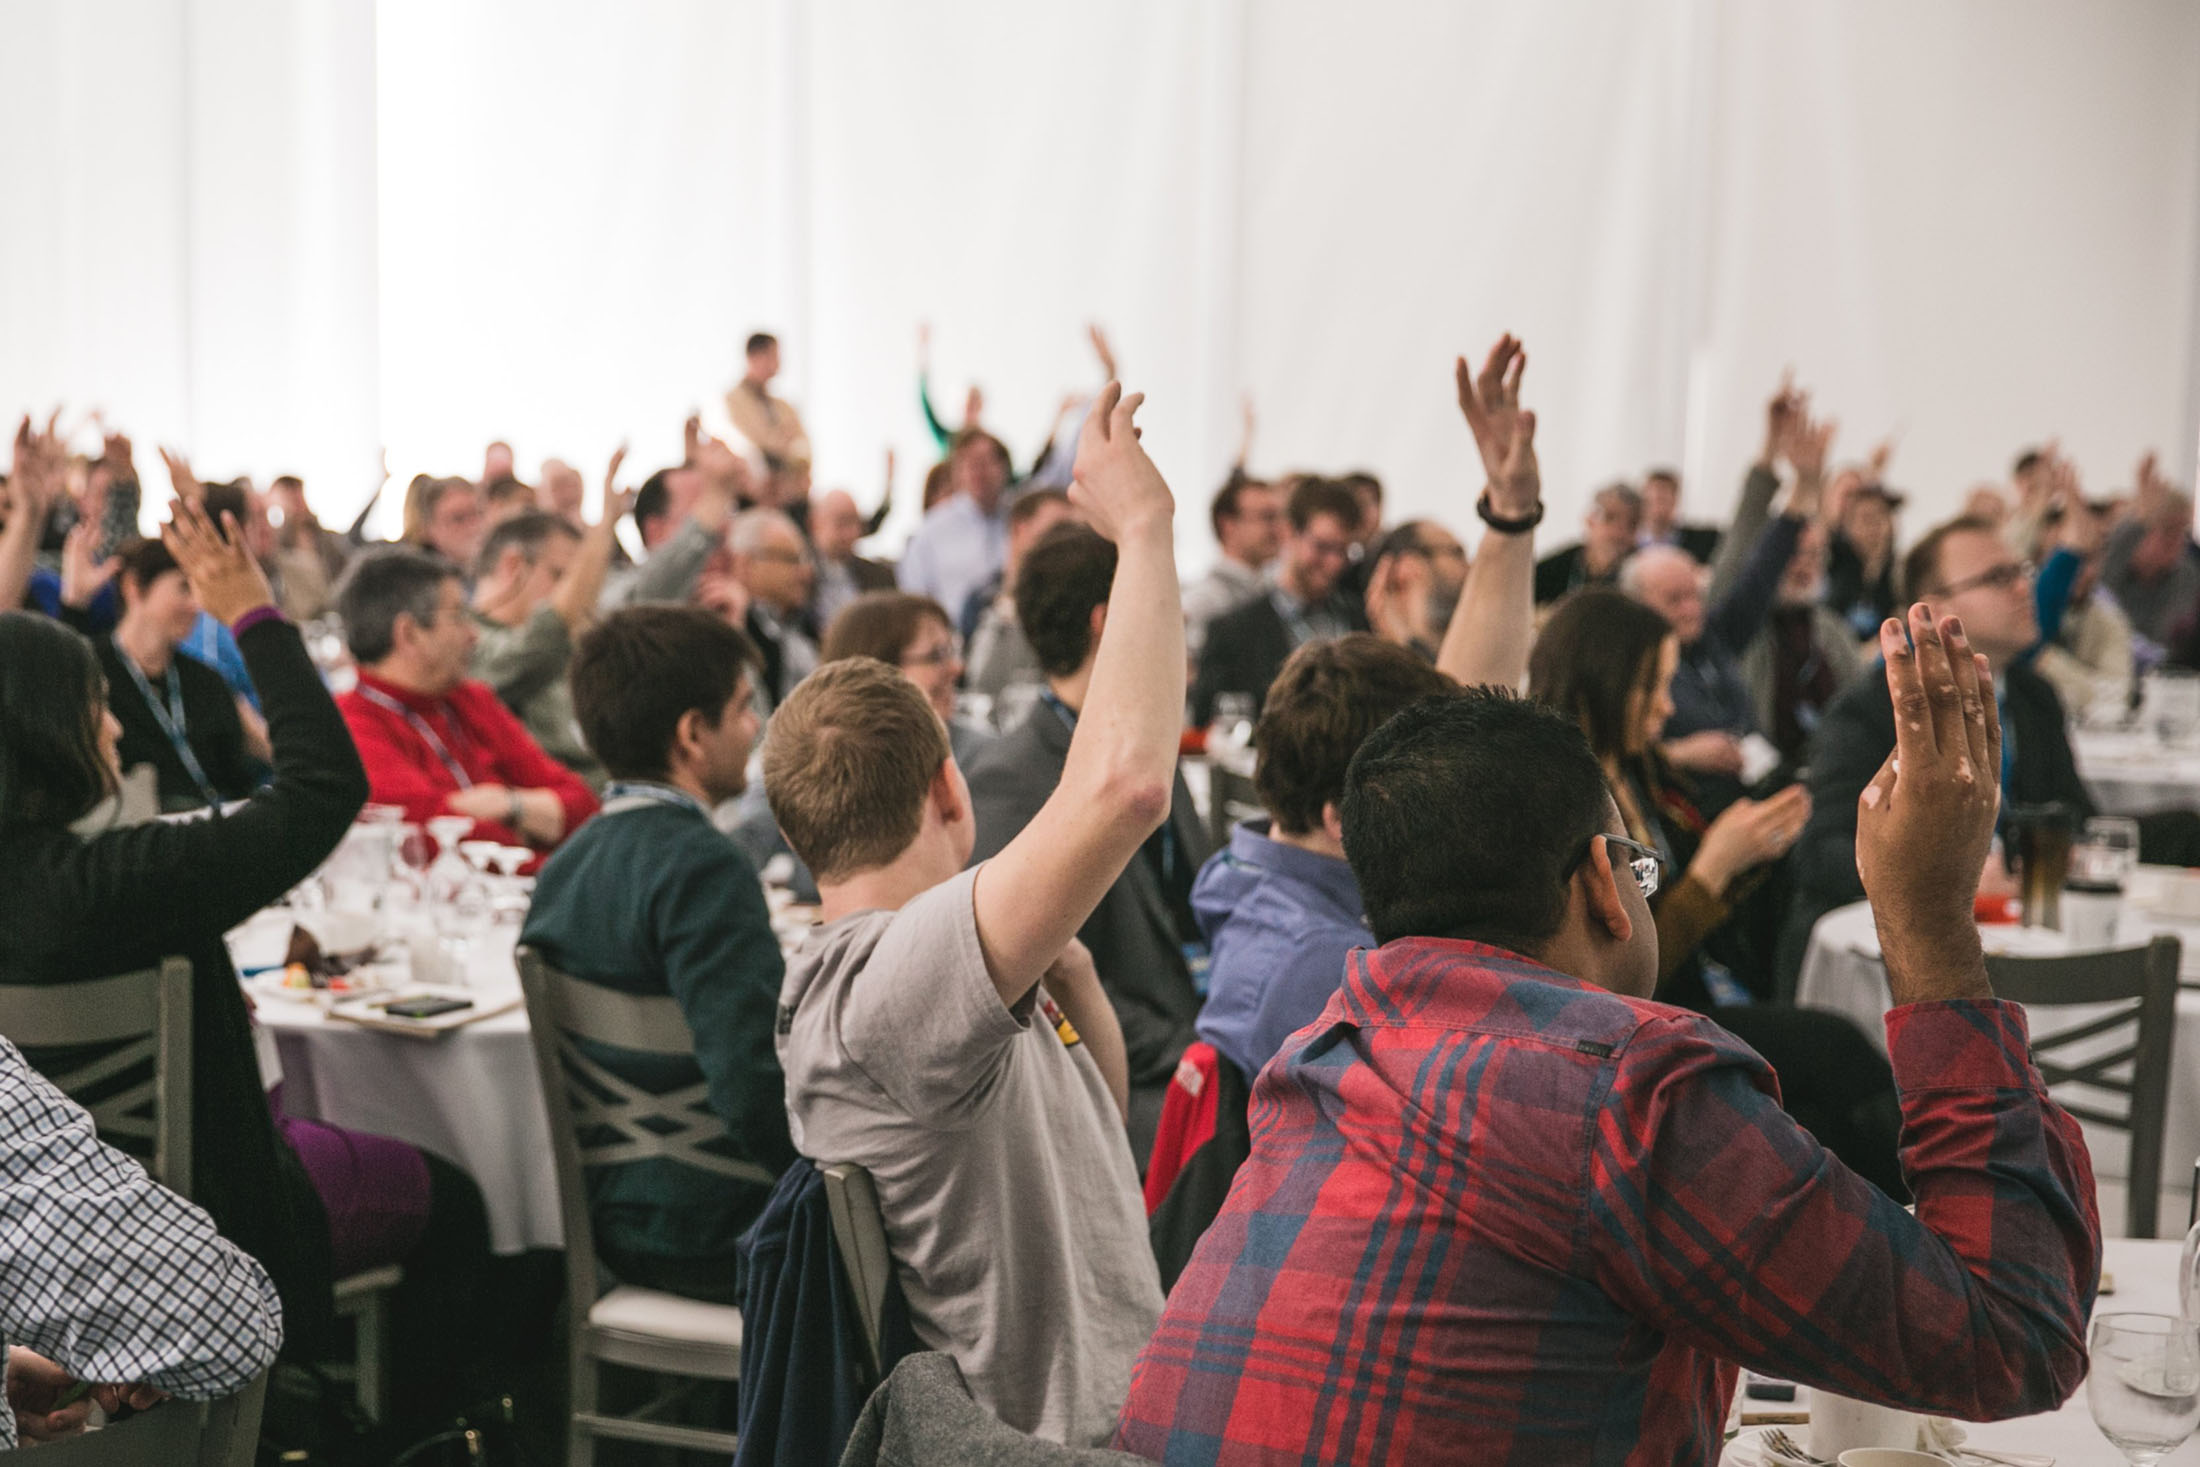 large group of business people dressed in business-casual engaged in an event putting their hands up